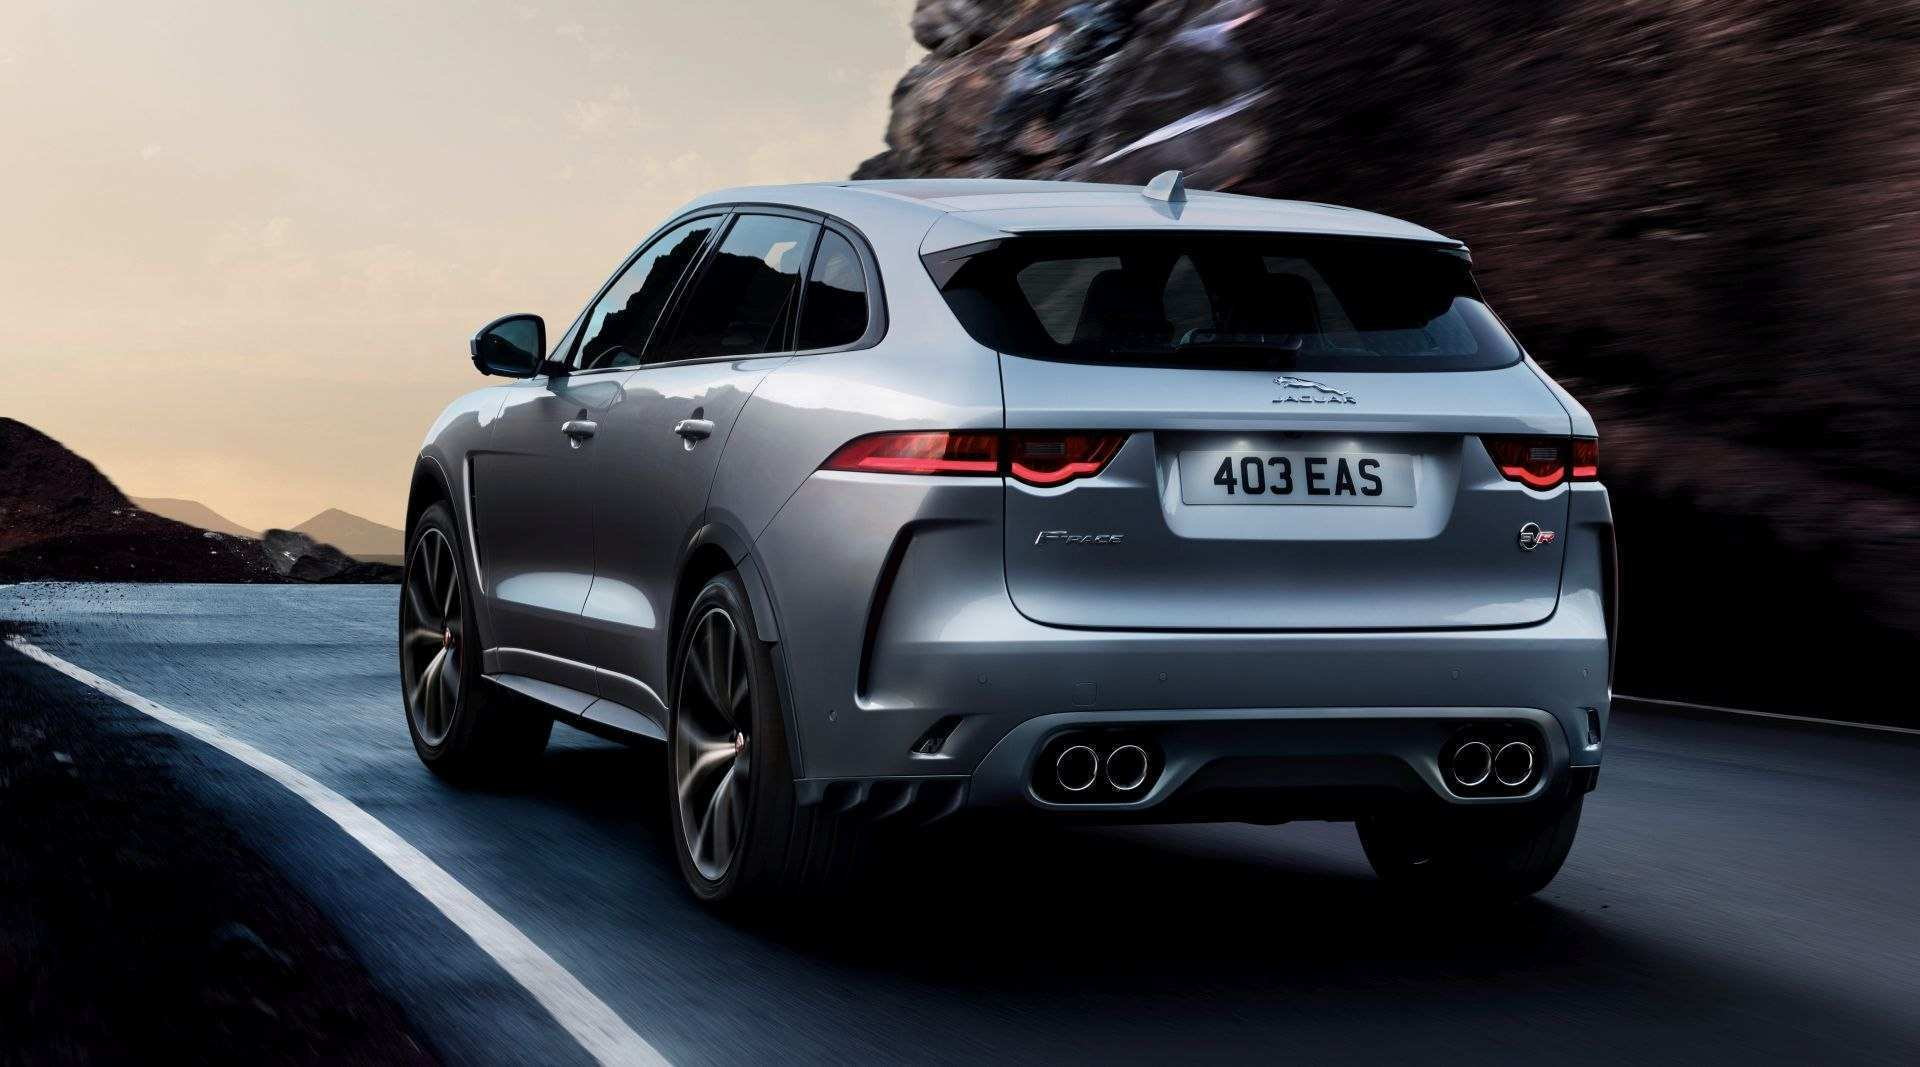 38 All New 2020 Jaguar Release Date Performance And New Engine